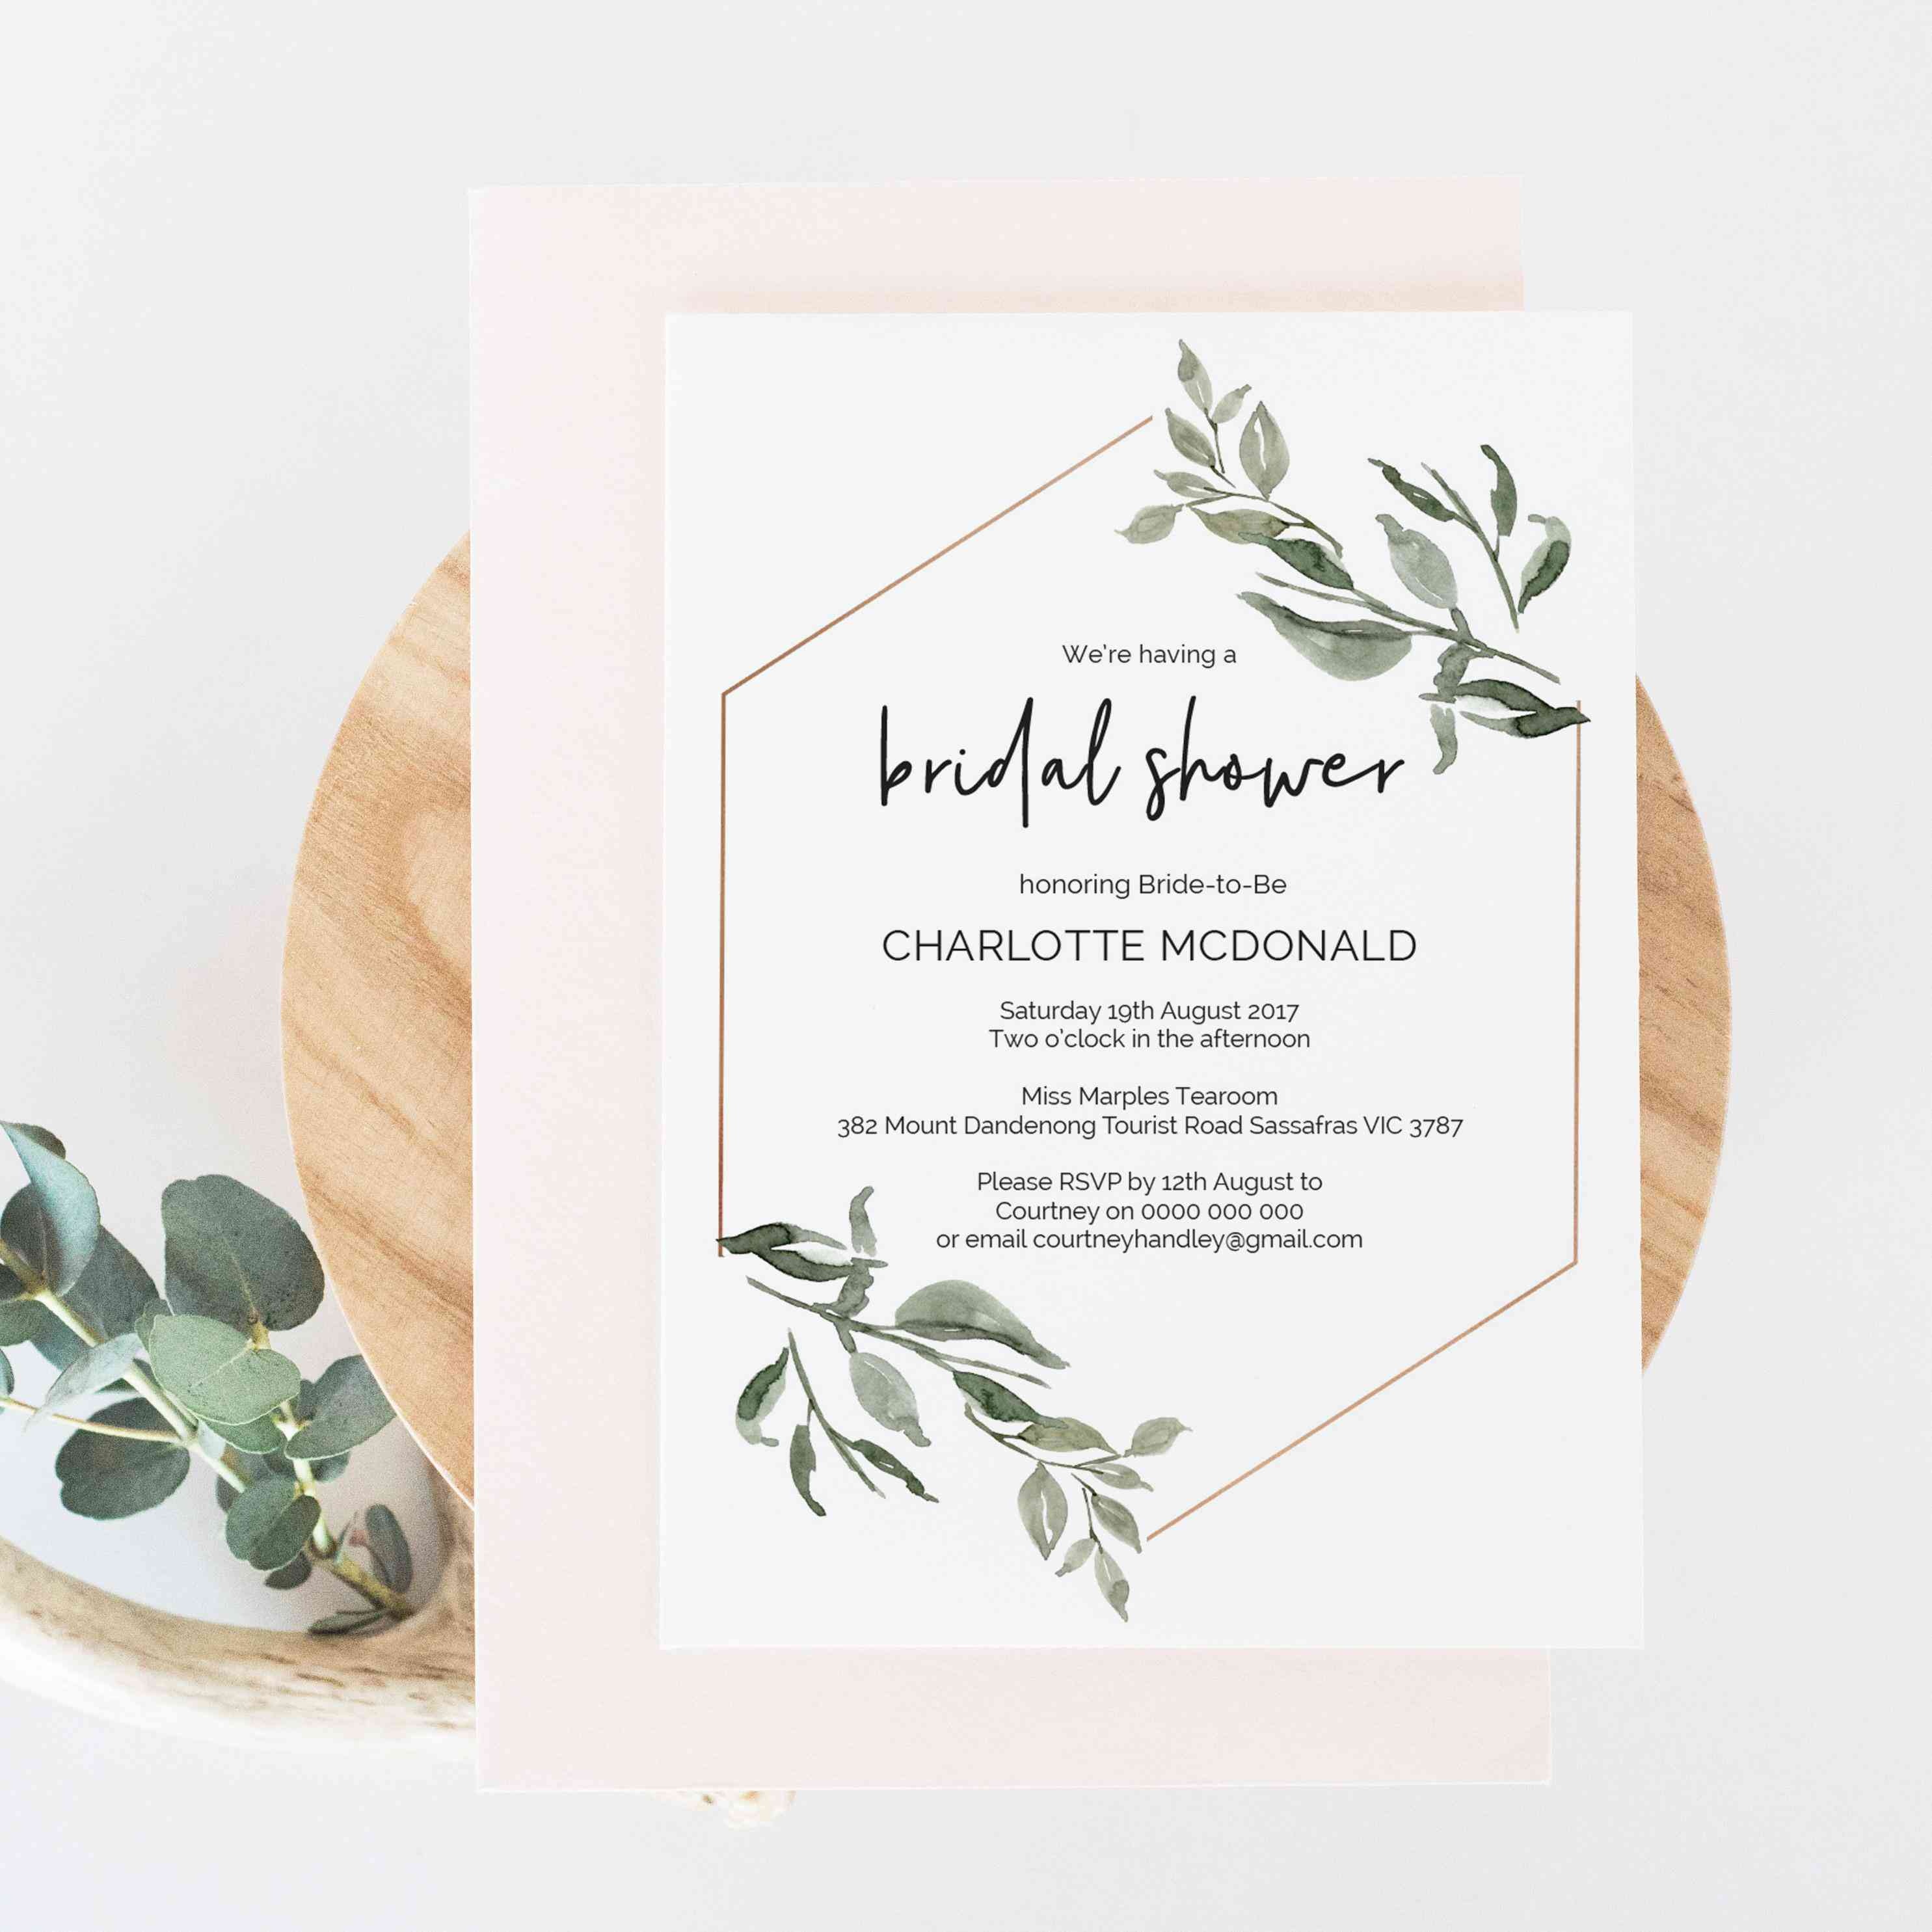 When Do You Send Out Wedding Invitations: 14 Best Bridal Shower Invitations For Every Type Of